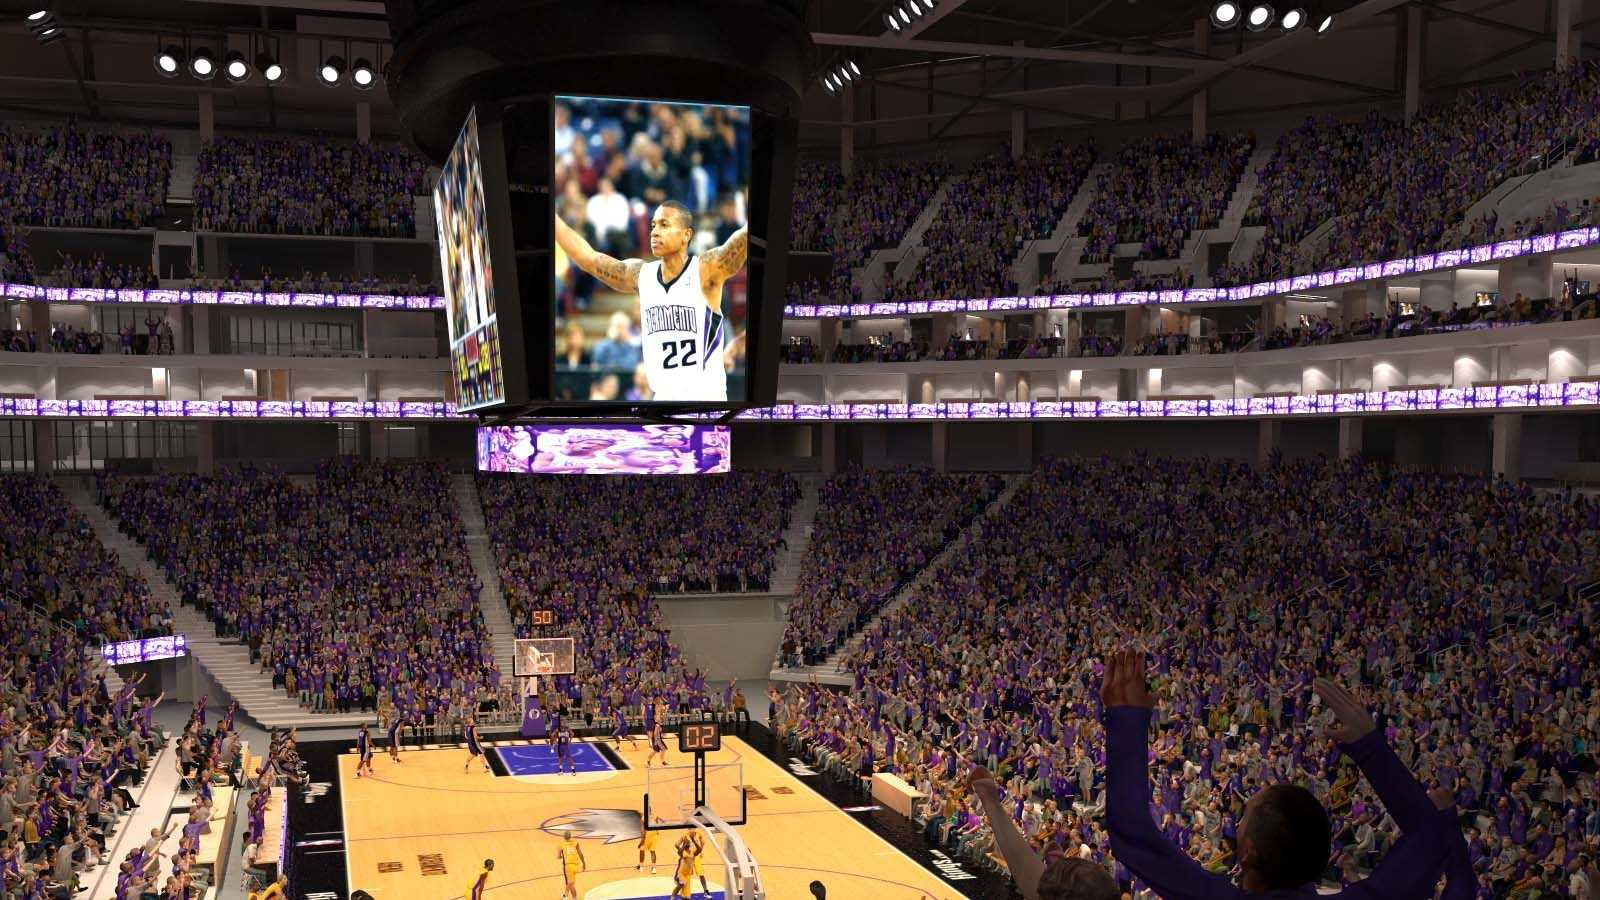 New Sacramento Kings arena rendering